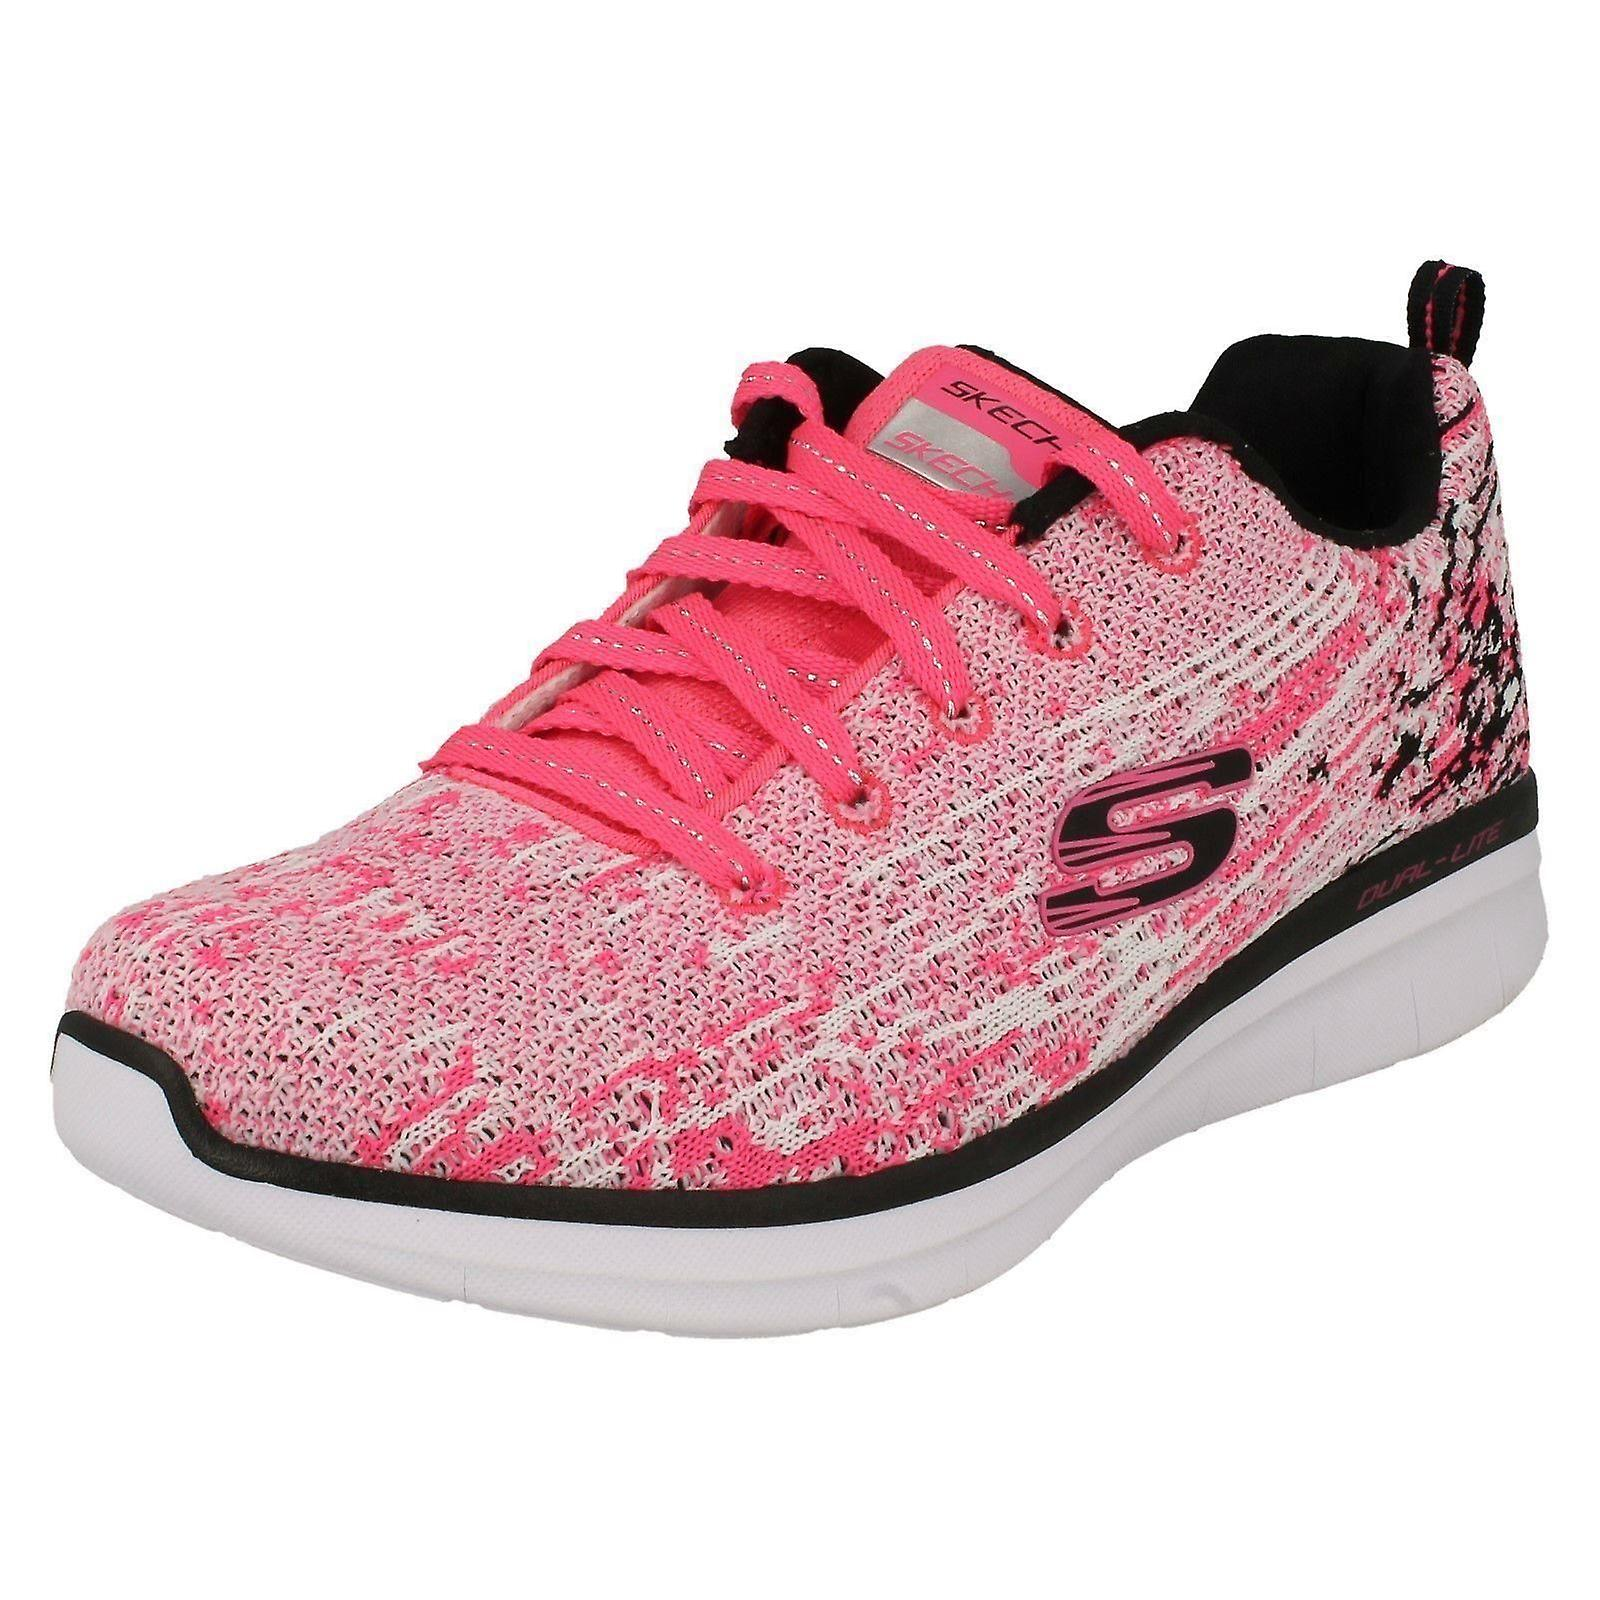 Girls Skechers Sports Trainers High Spirits 81620 - Neon rose noir Textile - UK Taille 9.5 - EU Taille 27  - US Taille 10.5